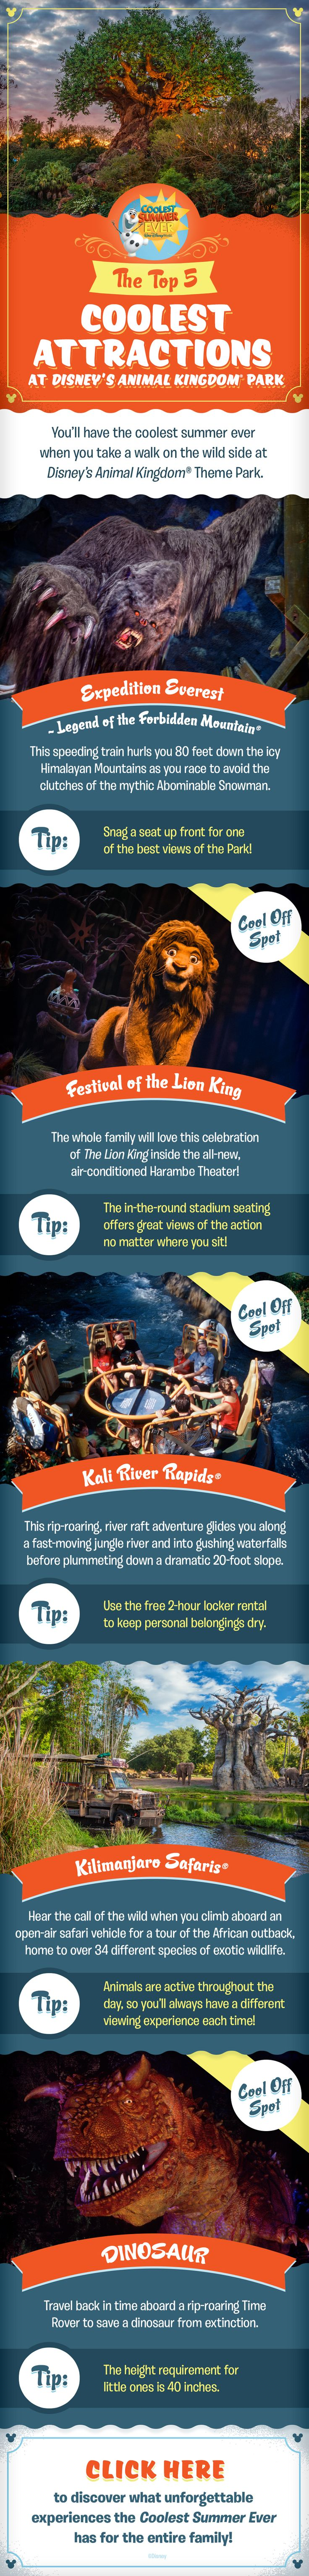 Check out the Top 5 Coolest Attractions at Disney's Animal Kingdom and get ready to have the Coolest Summer Ever as you plan your family vacation at Walt Disney World! Whether you are craving thrills on Expedition Everest, looking to see animals on Kilimanjaro Safaris, or wanting to check out Festival of the Lion King, there's something for everyone in your family to enjoy!